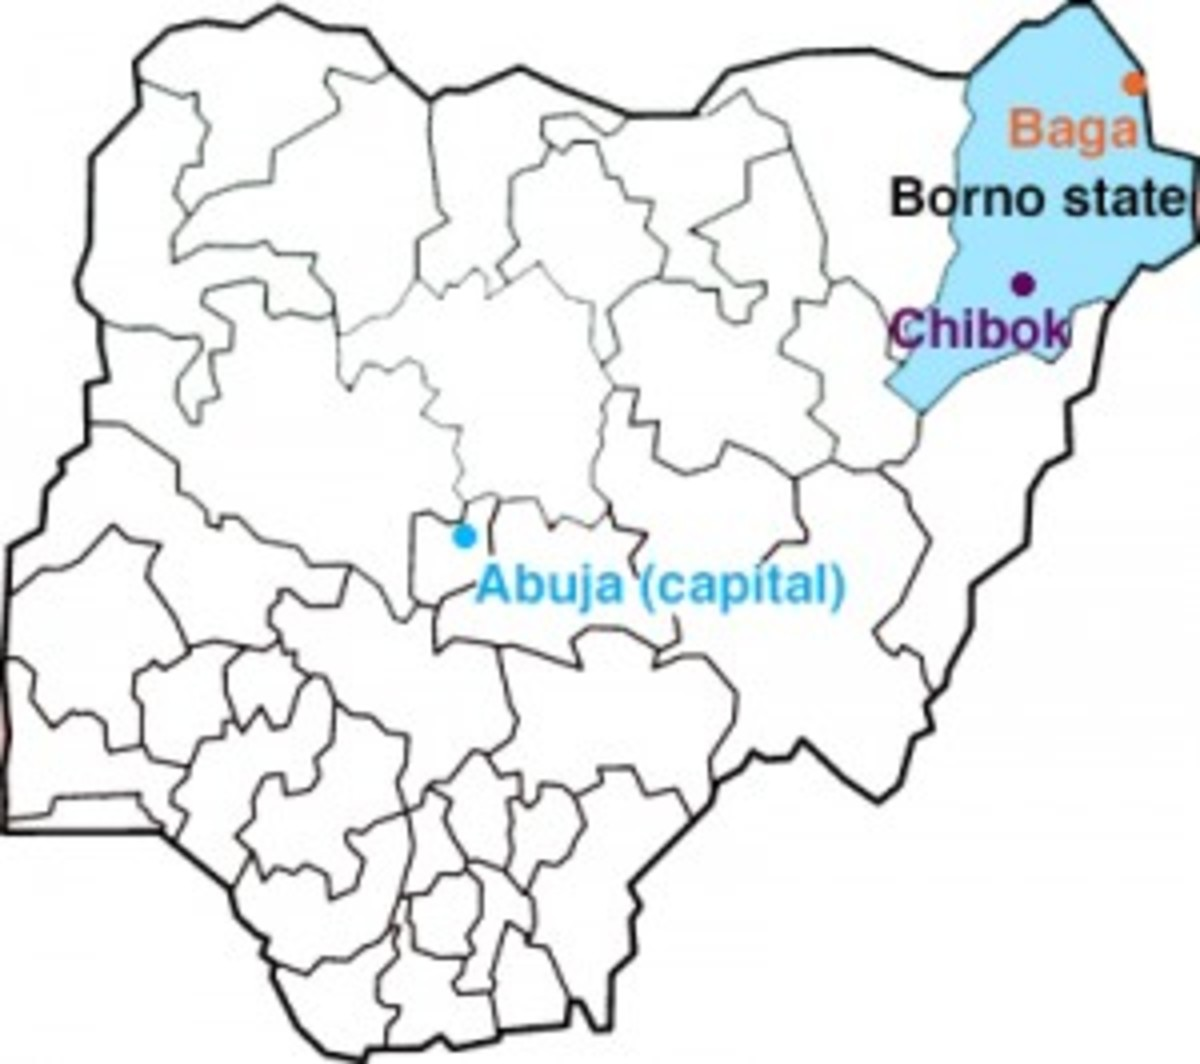 Boko Haram's violence is concentrated in Nigeria's northeast Borno state. (Photo: Pacific Standard/Wikimedia Commons)